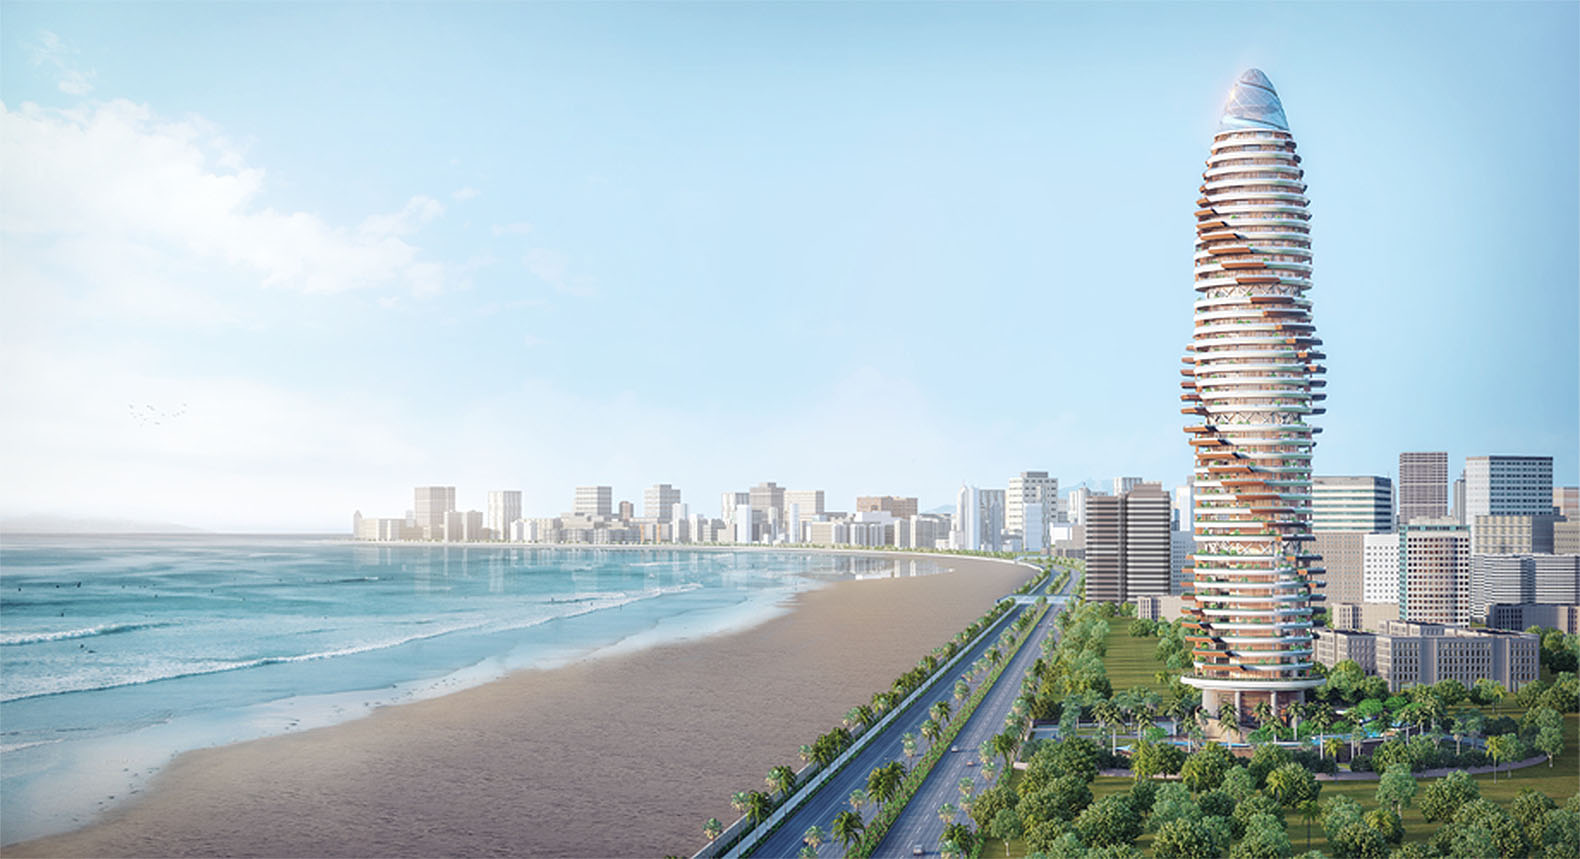 A layer of vegetation wraps around this tower in Abu Dhabi